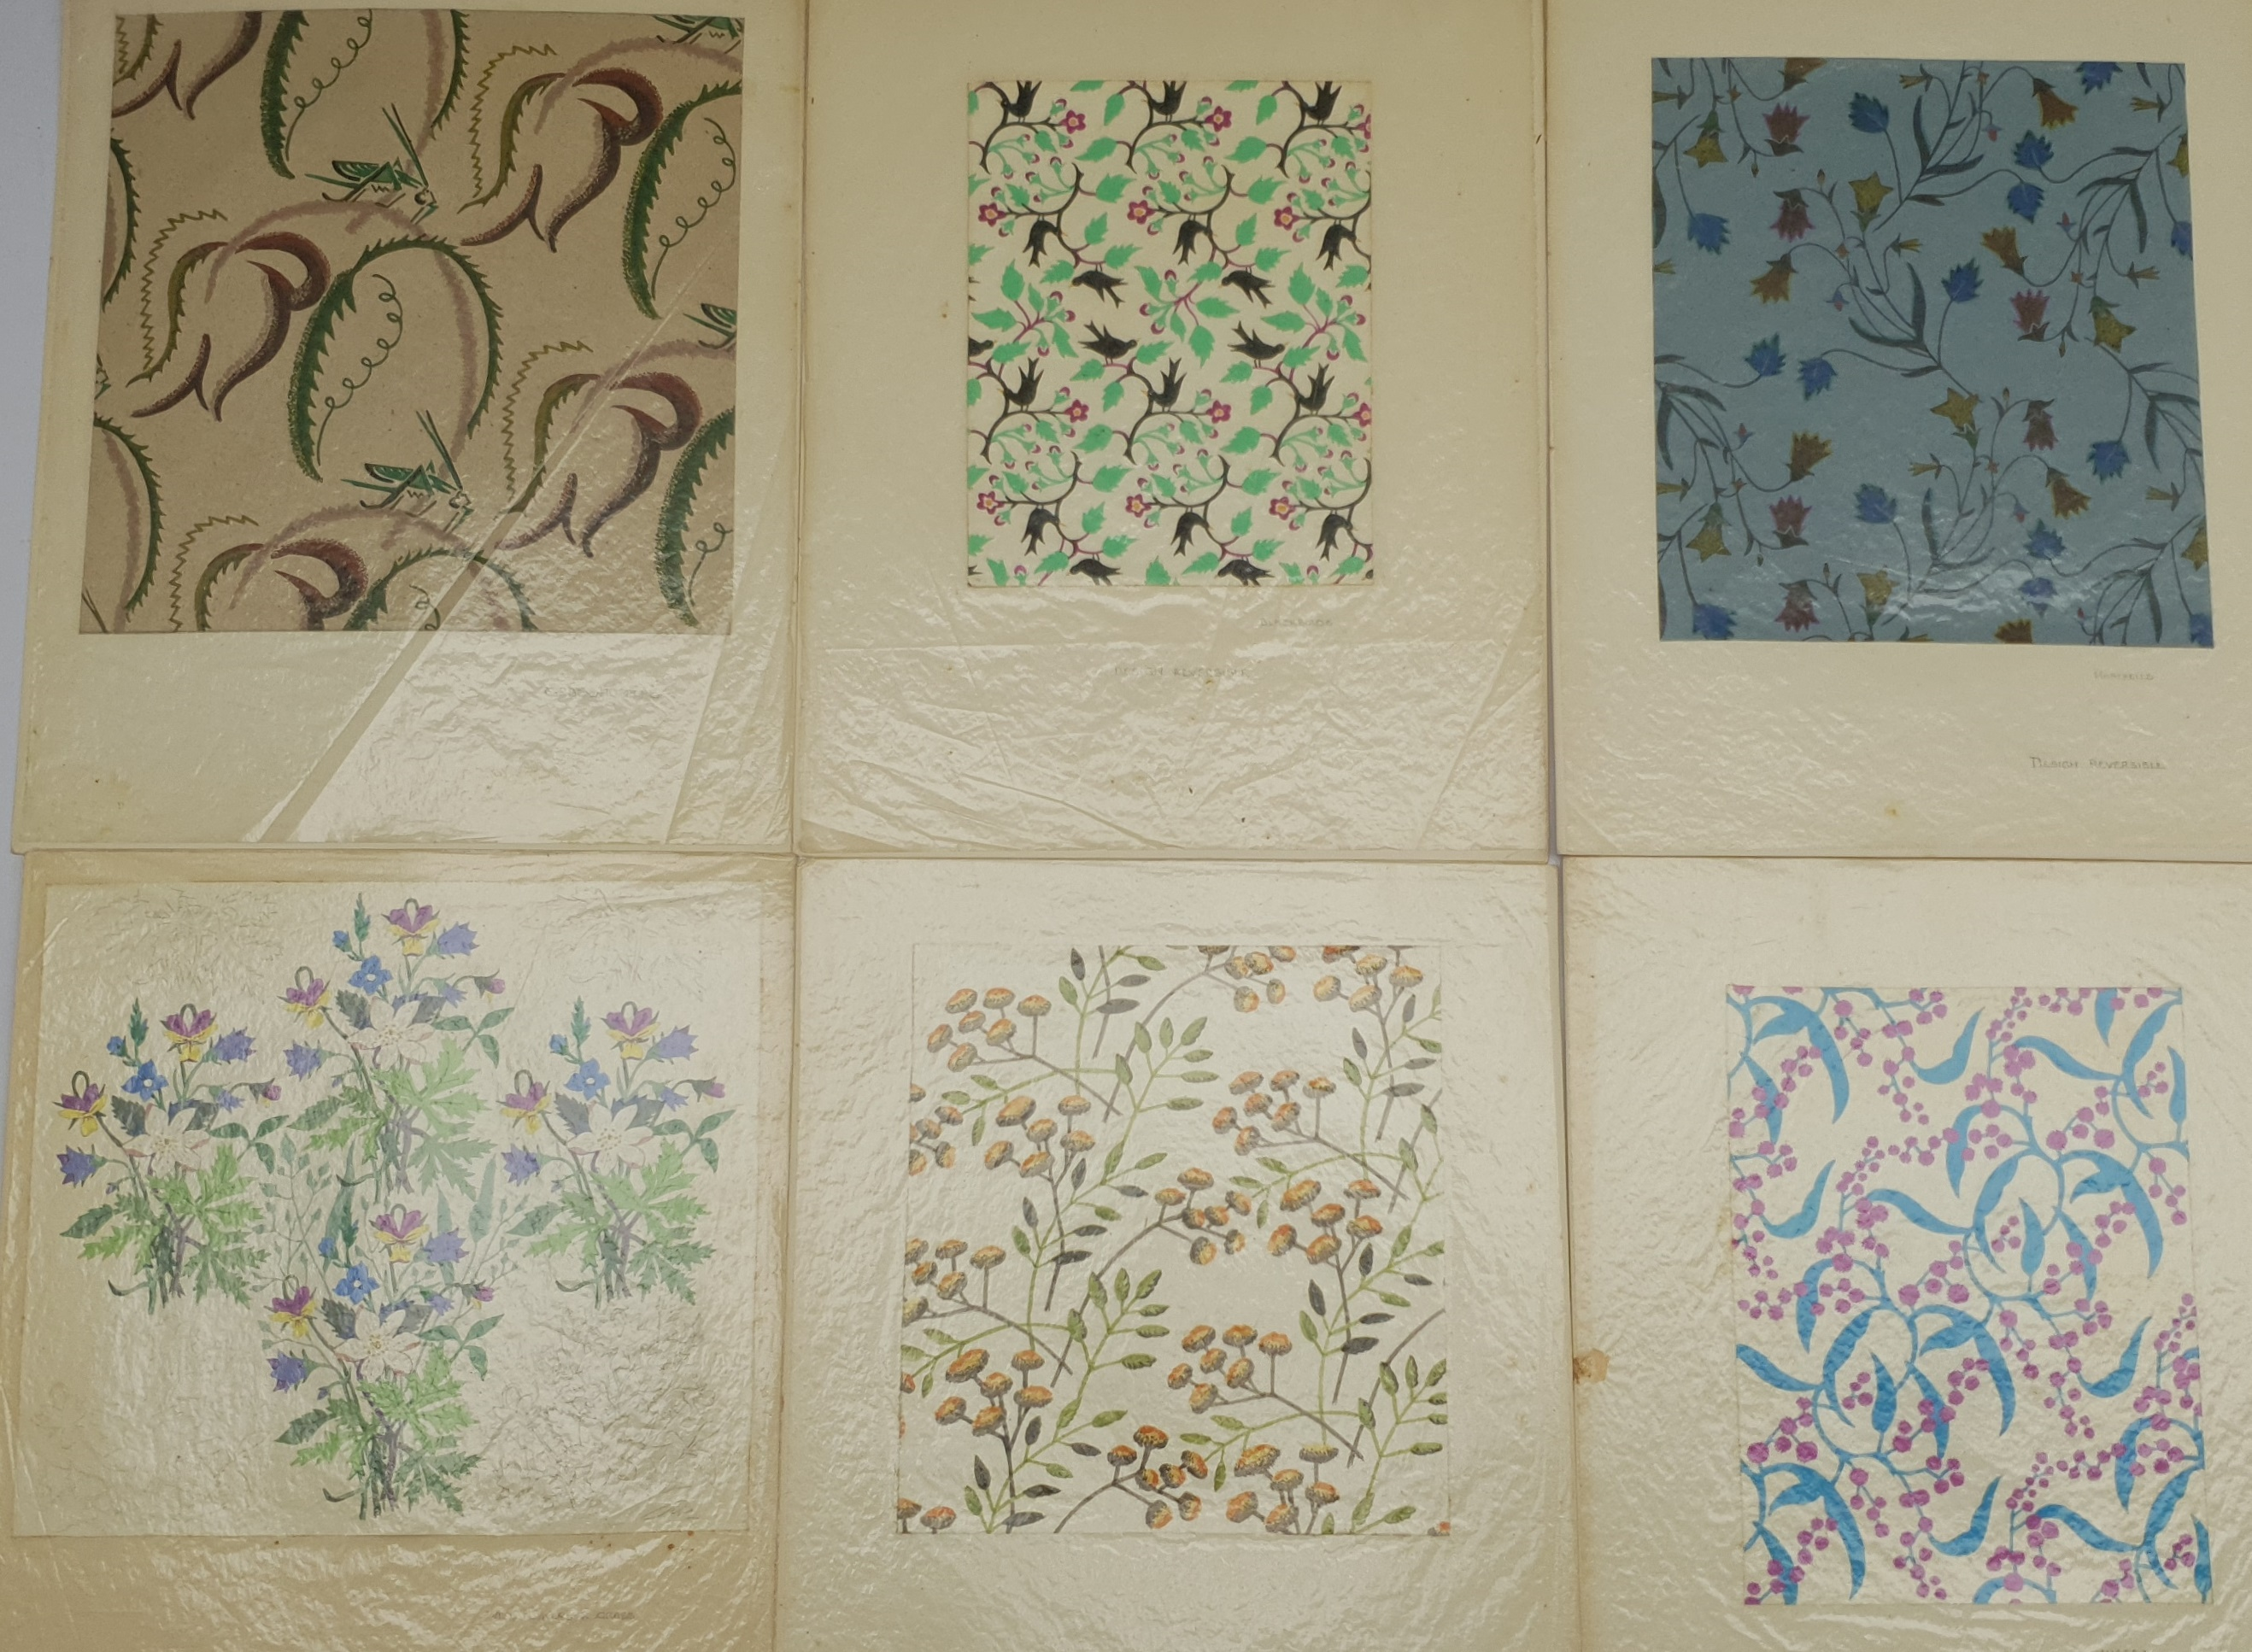 EM Ball (British mid 20th century): Six original fabric/wallpaper designs: 'Grasshoppers', 'Blackbir